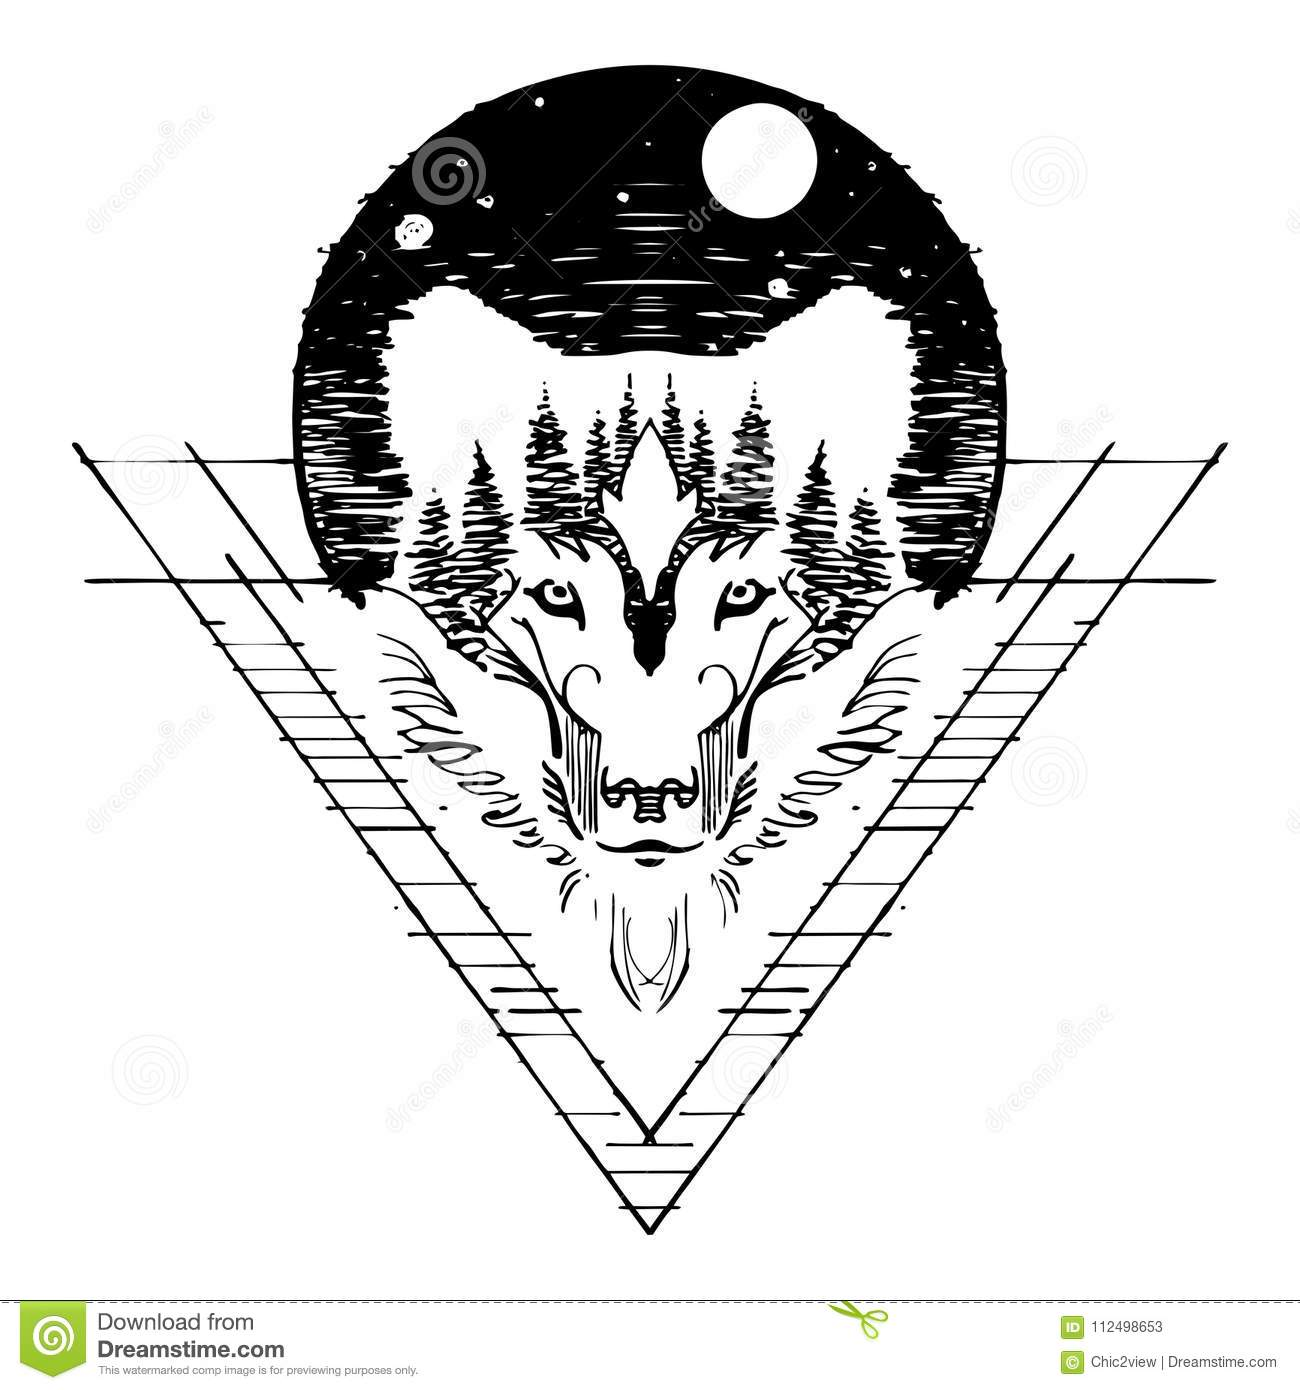 0cc6447a0 Wolf face double exposure with forest and full moon in night sky design  with sketch pen style for tattoo with white background